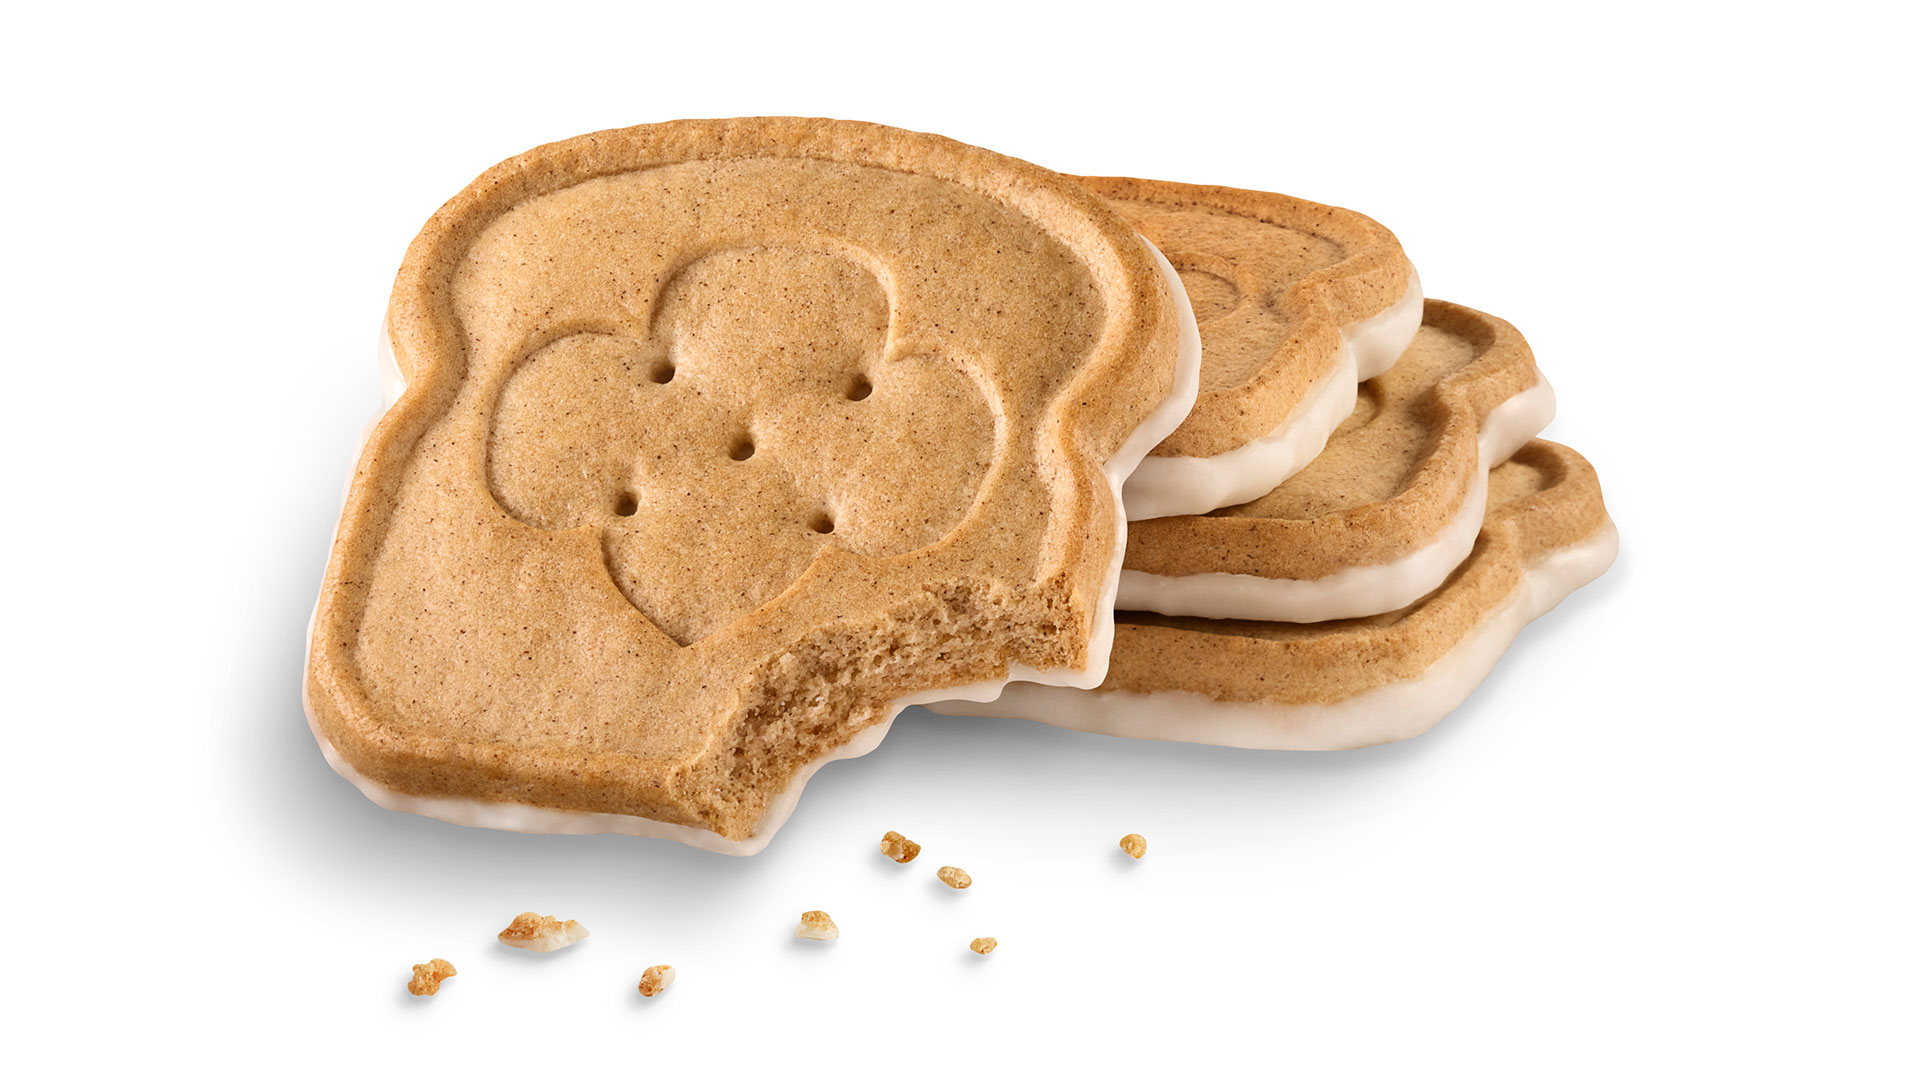 Toast-Yay! Girl Scout Cookies